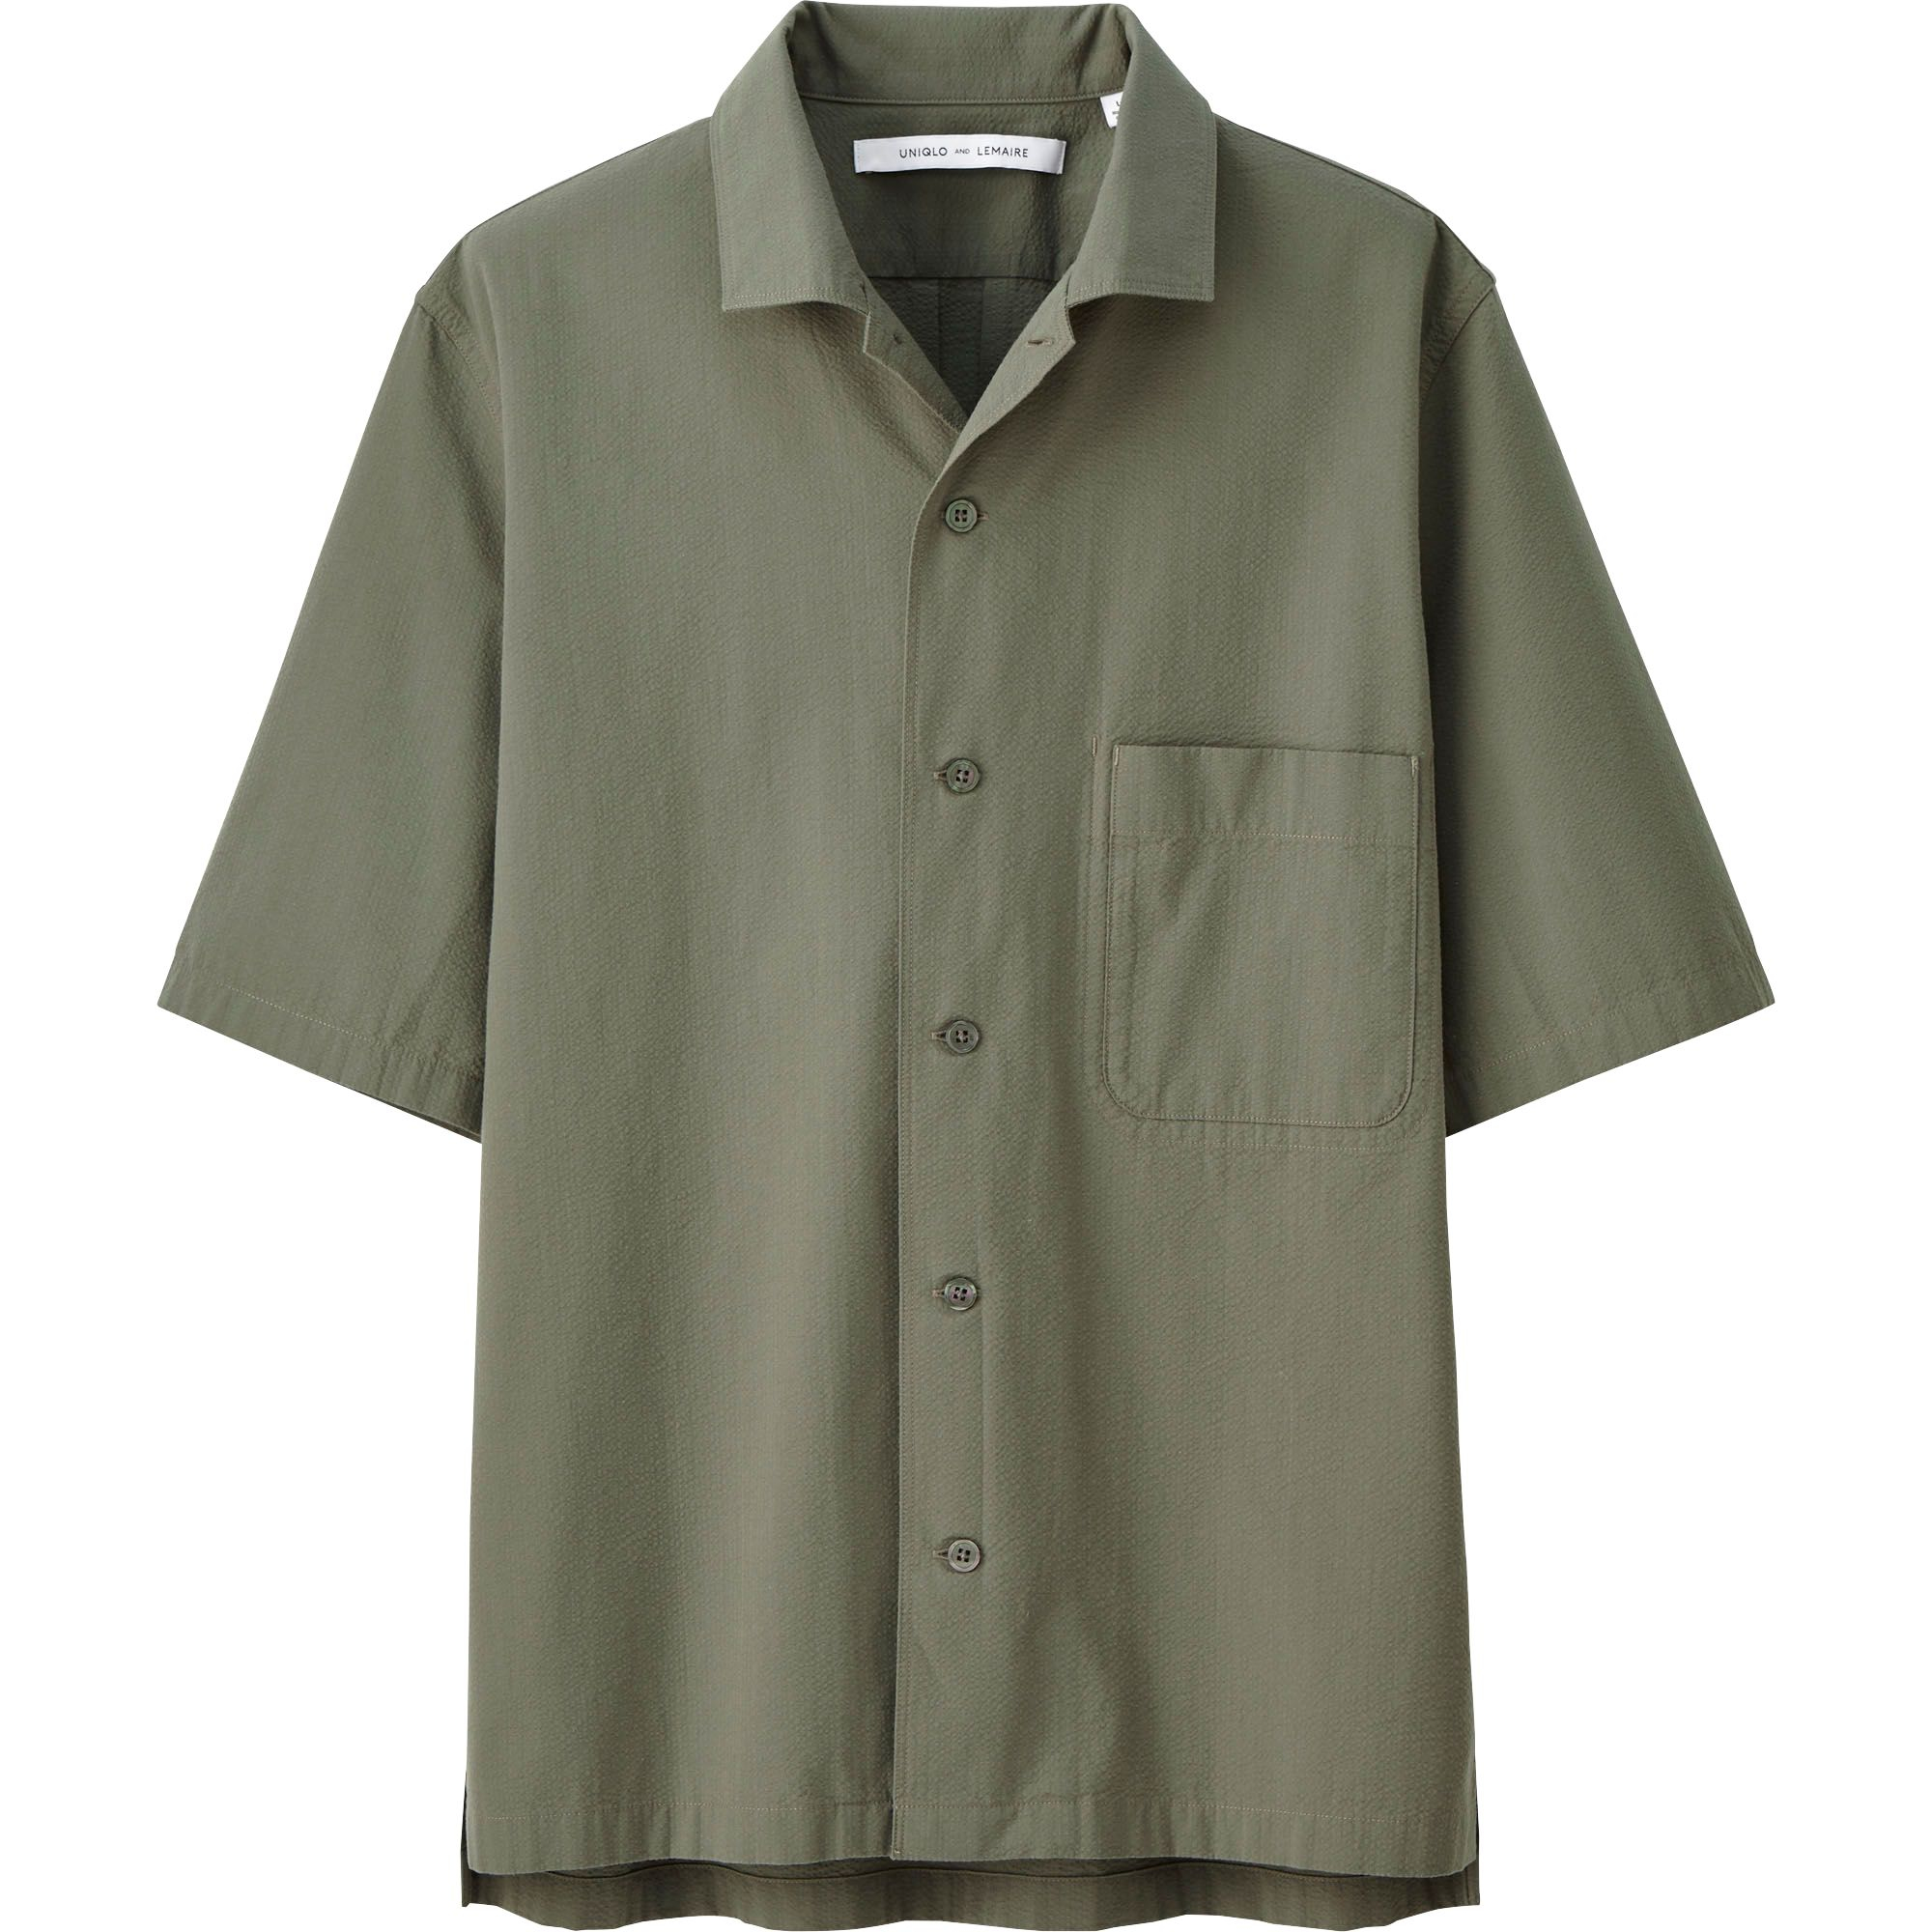 Uniqlo men 39 s lemaire seersucker short sleeve shirt in for Mens seersucker shirts on sale